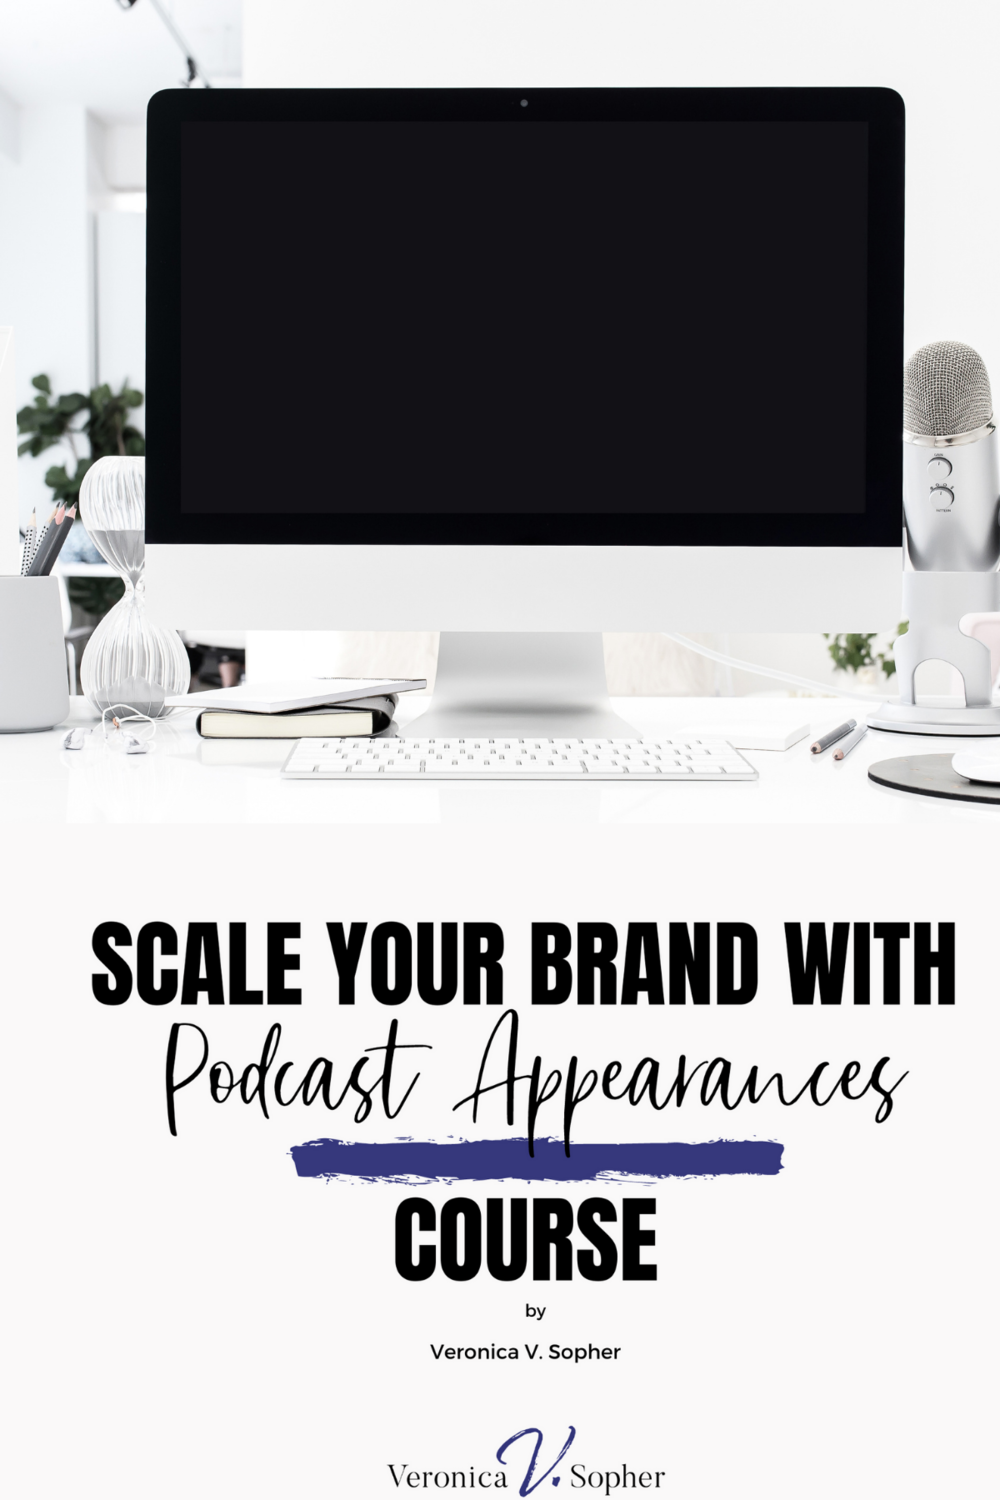 Scale Your Brand with Podcast Appearance by Veronica V. Sopher